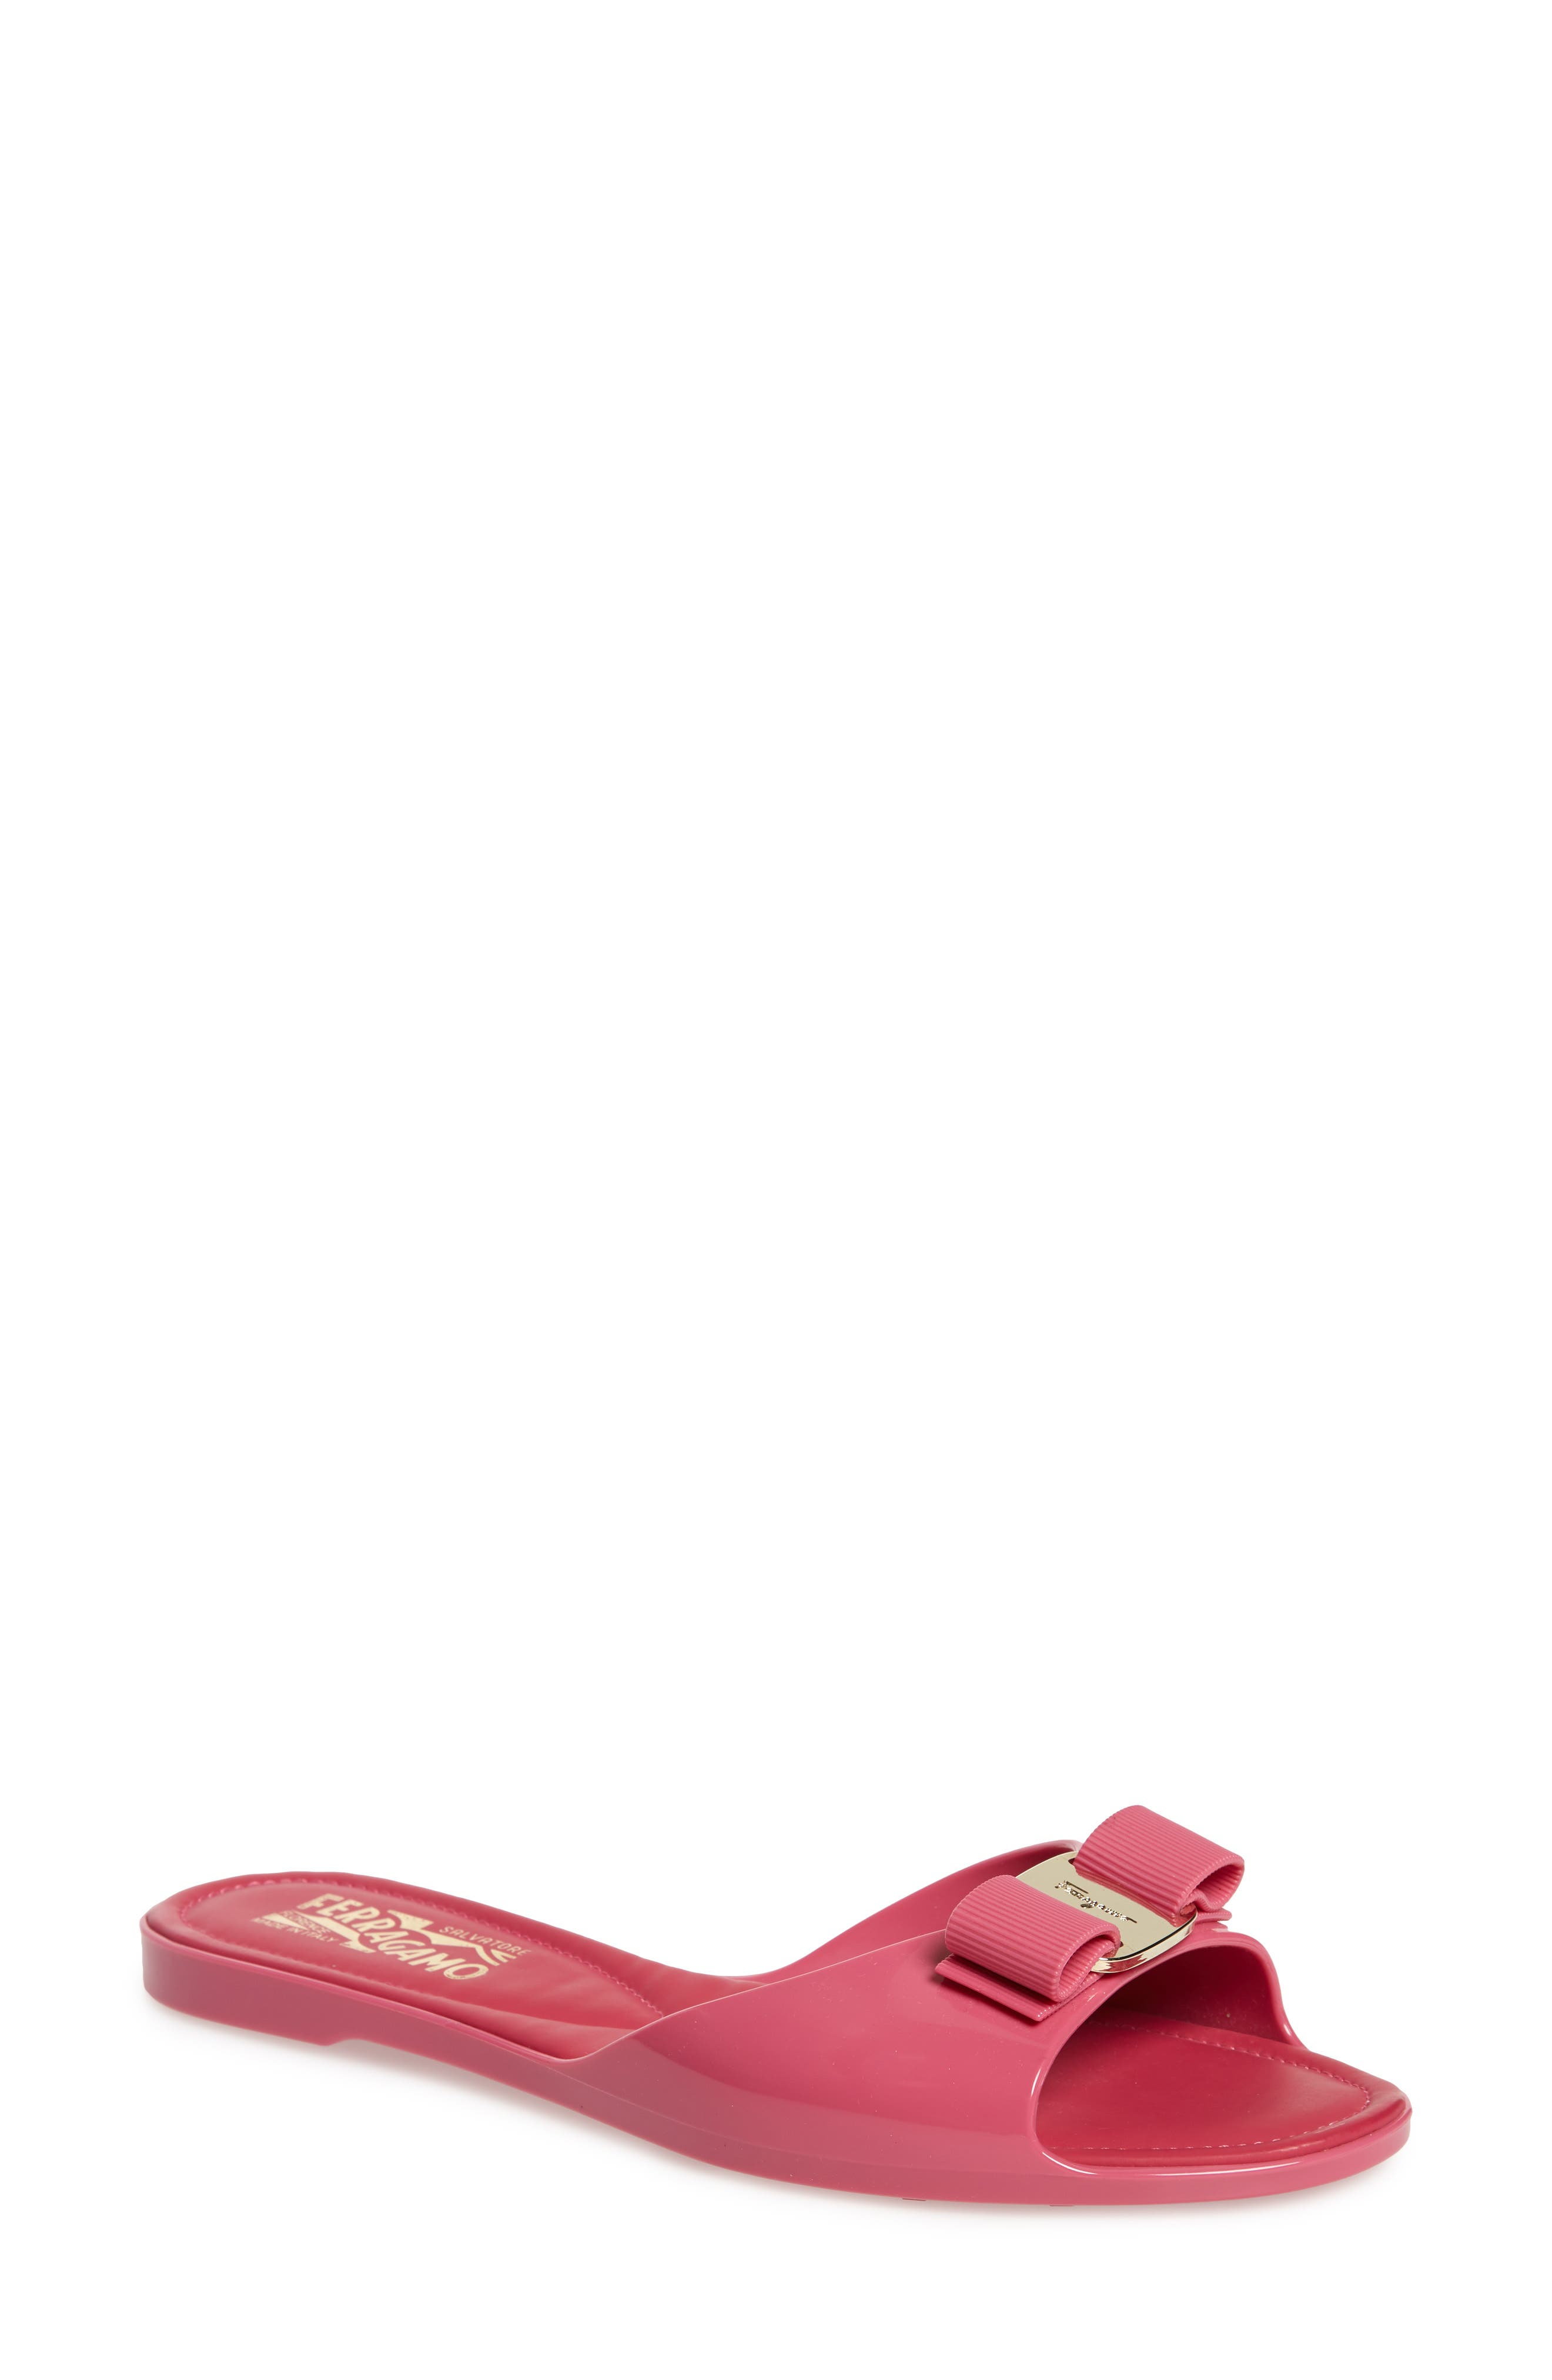 8af2228066d Ferragamo Women s Pink Shoes